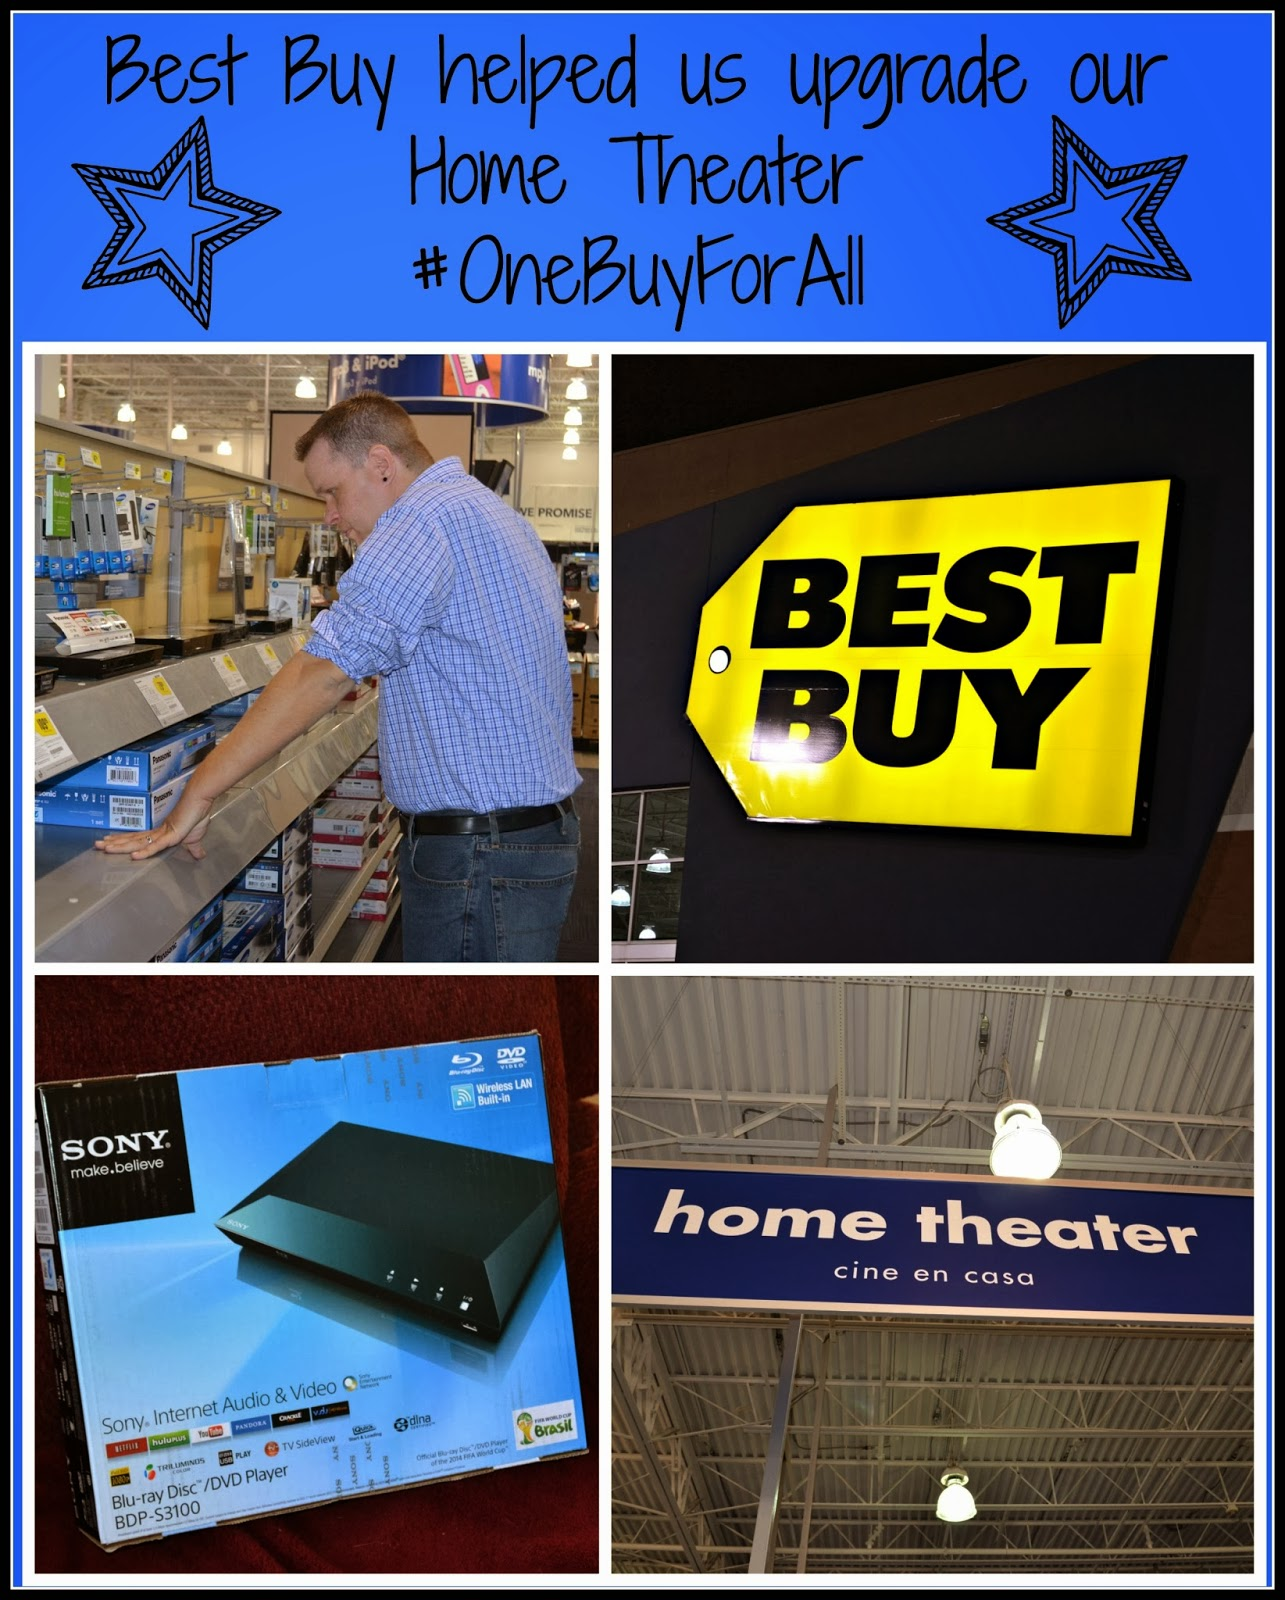 Home Theater Buying Tips: Best Electronics Found At Best Buy #OneBuyForAll